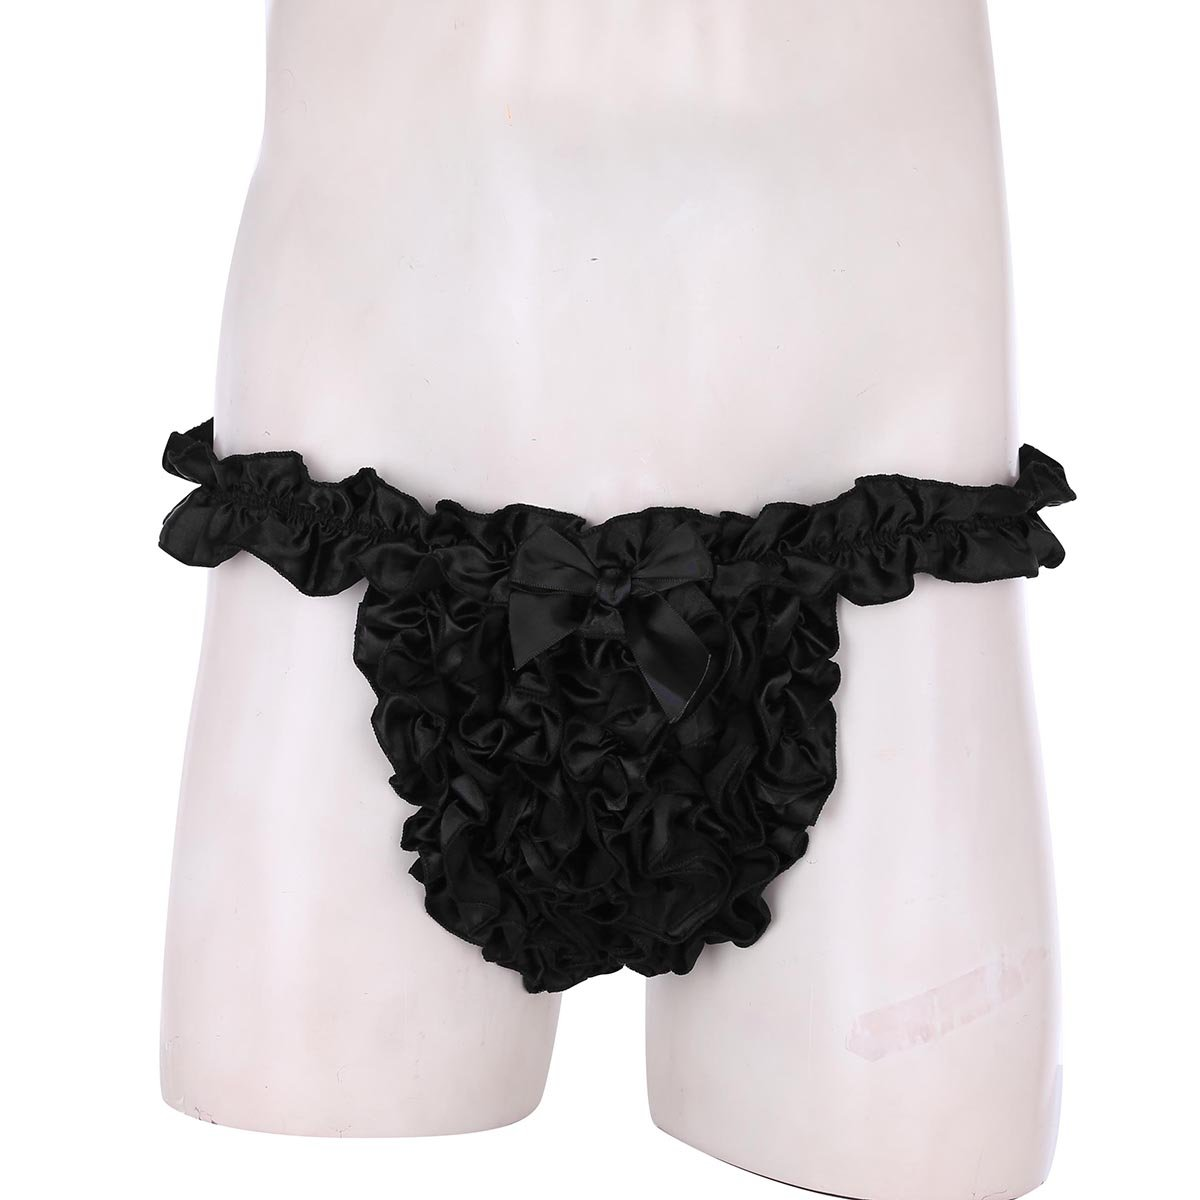 af9bd87cbbdb MSemis Luxury Supper Frilly Stain Ruffled Sissy Crossdress Men's ...